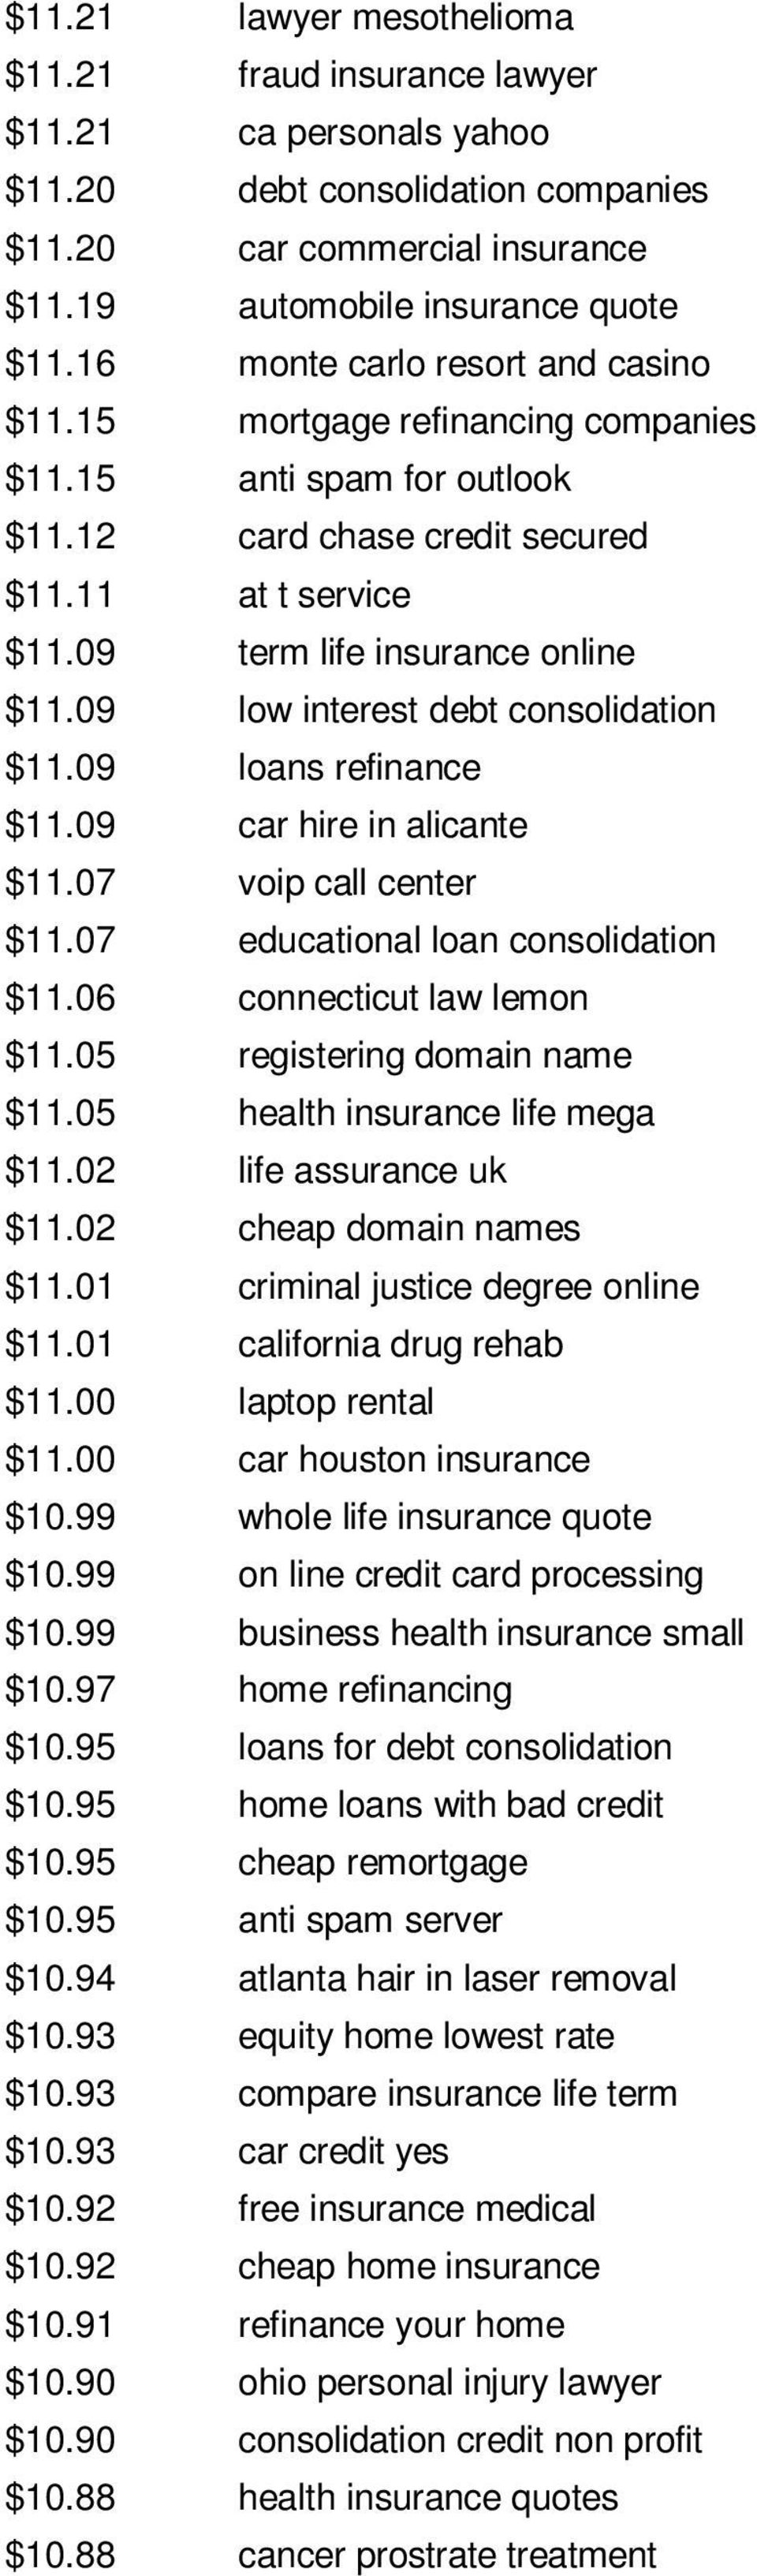 09 low interest debt consolidation $11.09 loans refinance $11.09 car hire in alicante $11.07 voip call center $11.07 educational loan consolidation $11.06 connecticut law lemon $11.